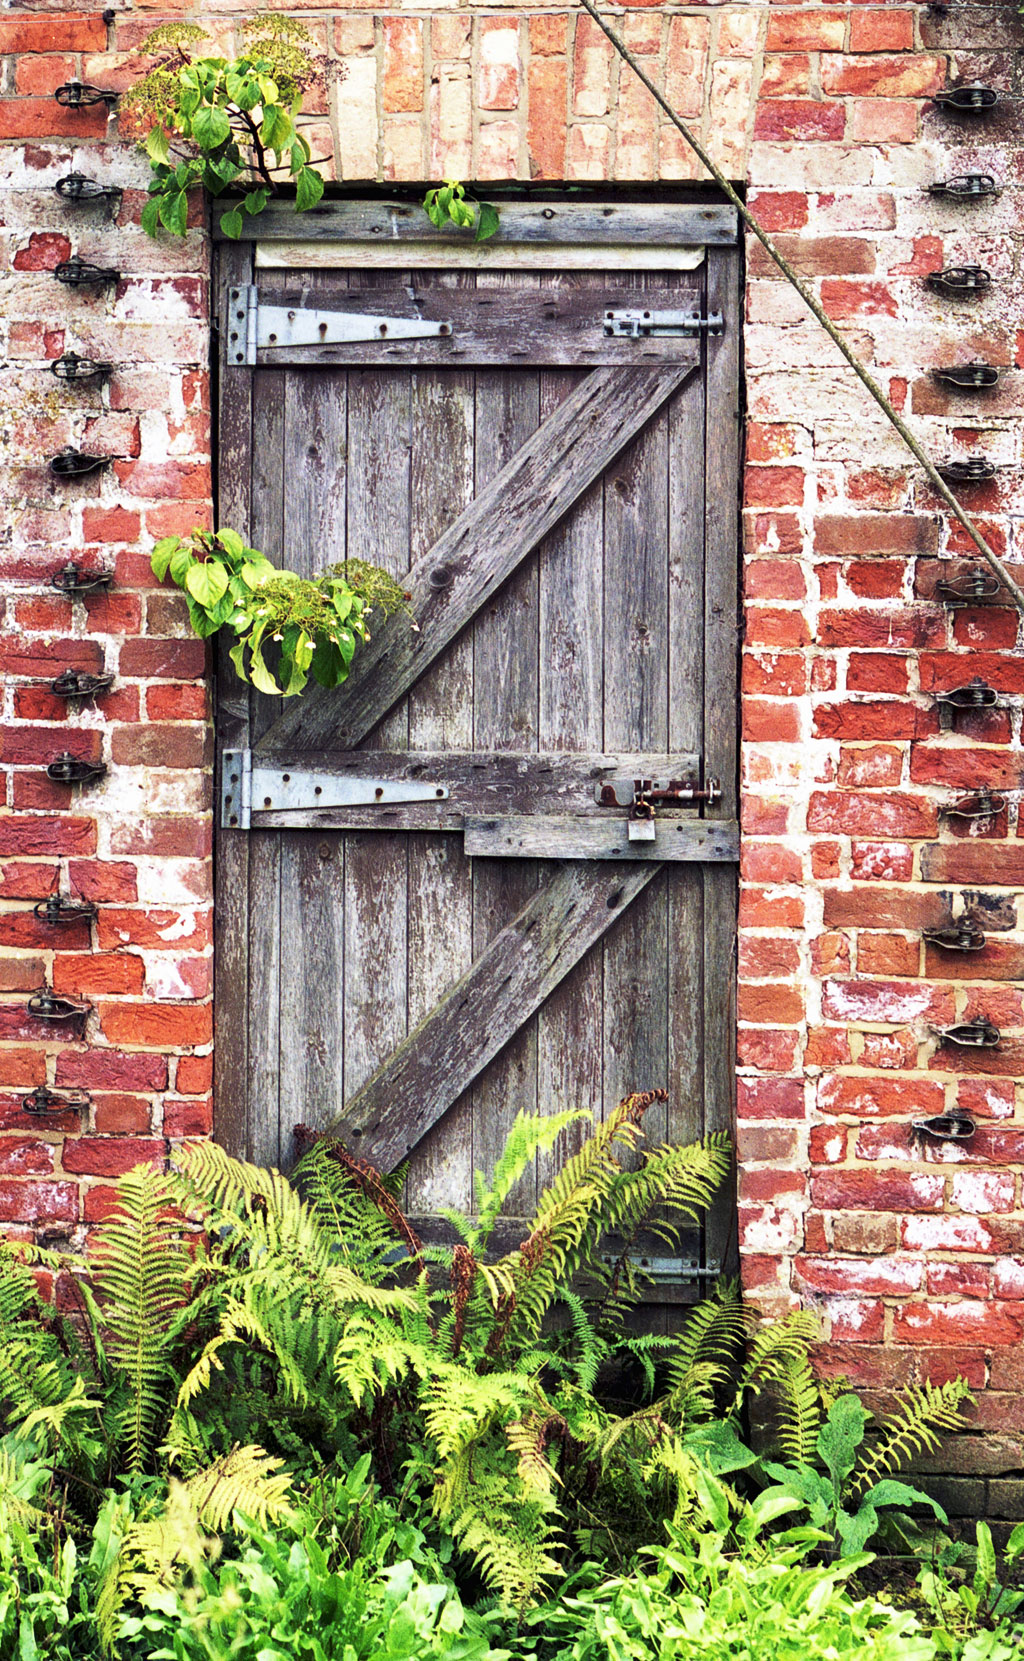 garden door 10 10 from 99 votes garden door 4 10 from 33 votes 1024 x 1661 · 766 kB · jpeg